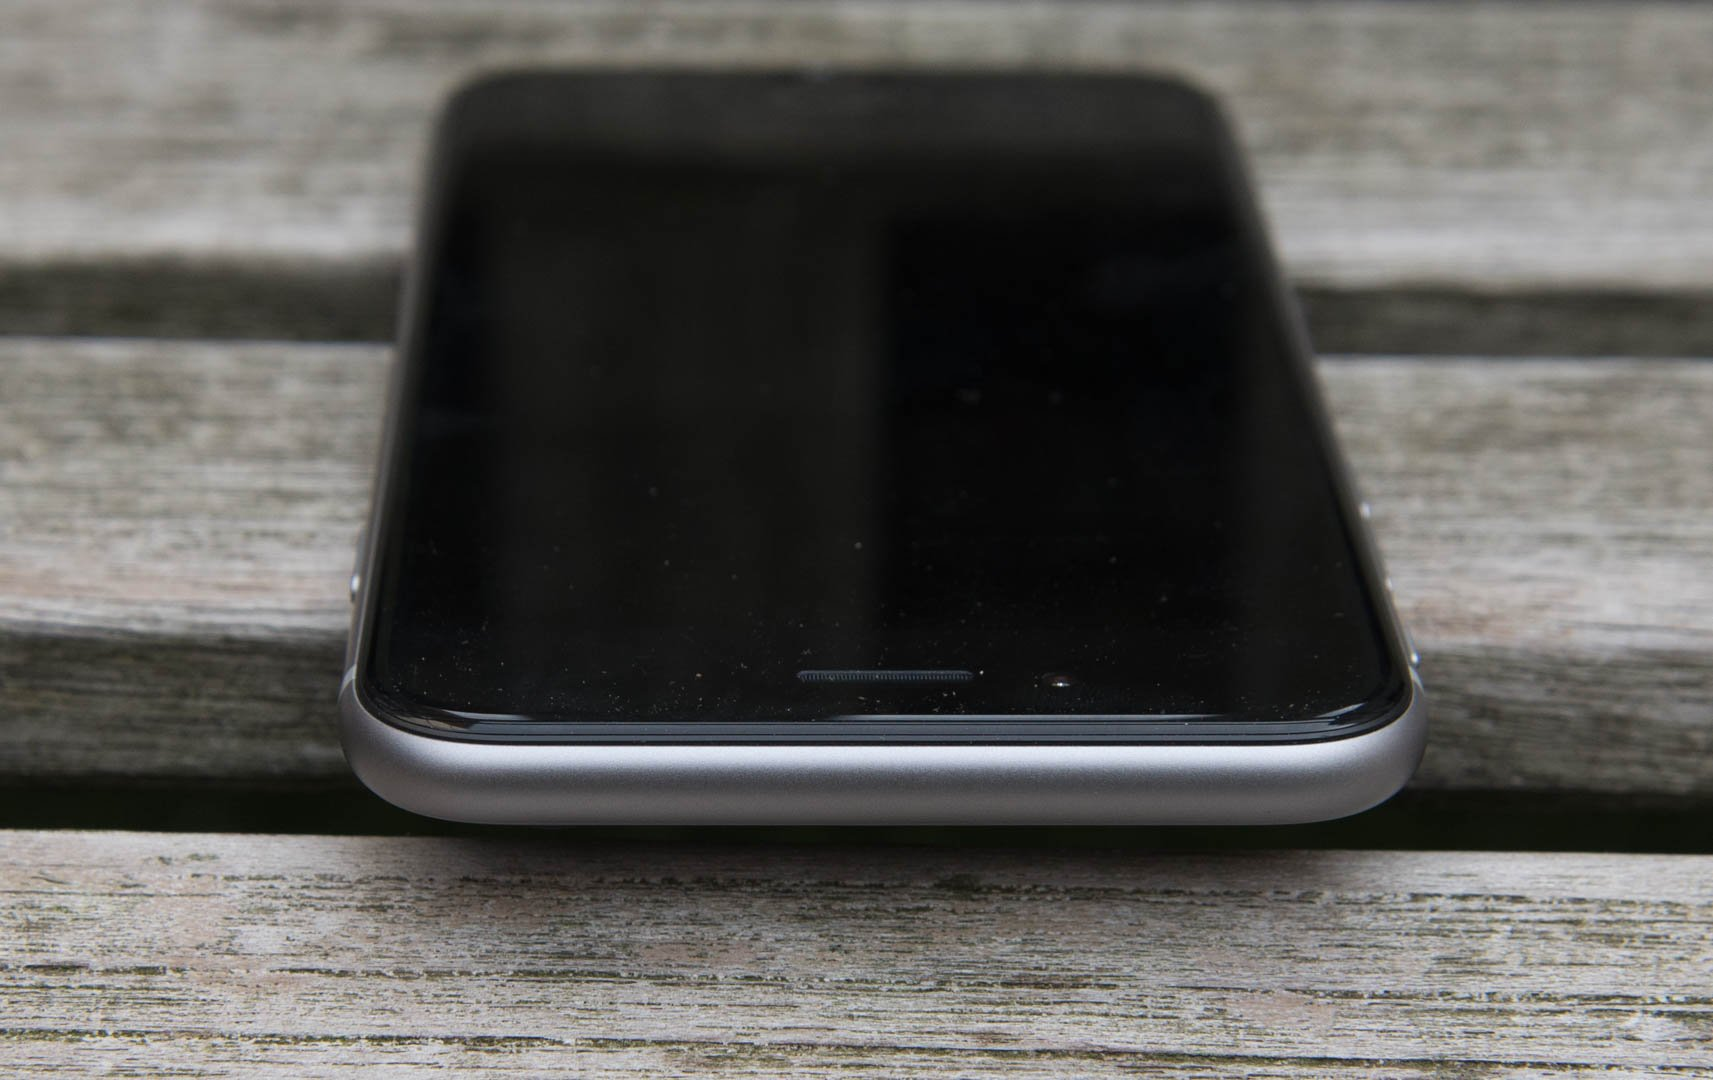 Apple Iphone 6 Review A Good That Belongs In The Past Plus 64gb Replacement By Top